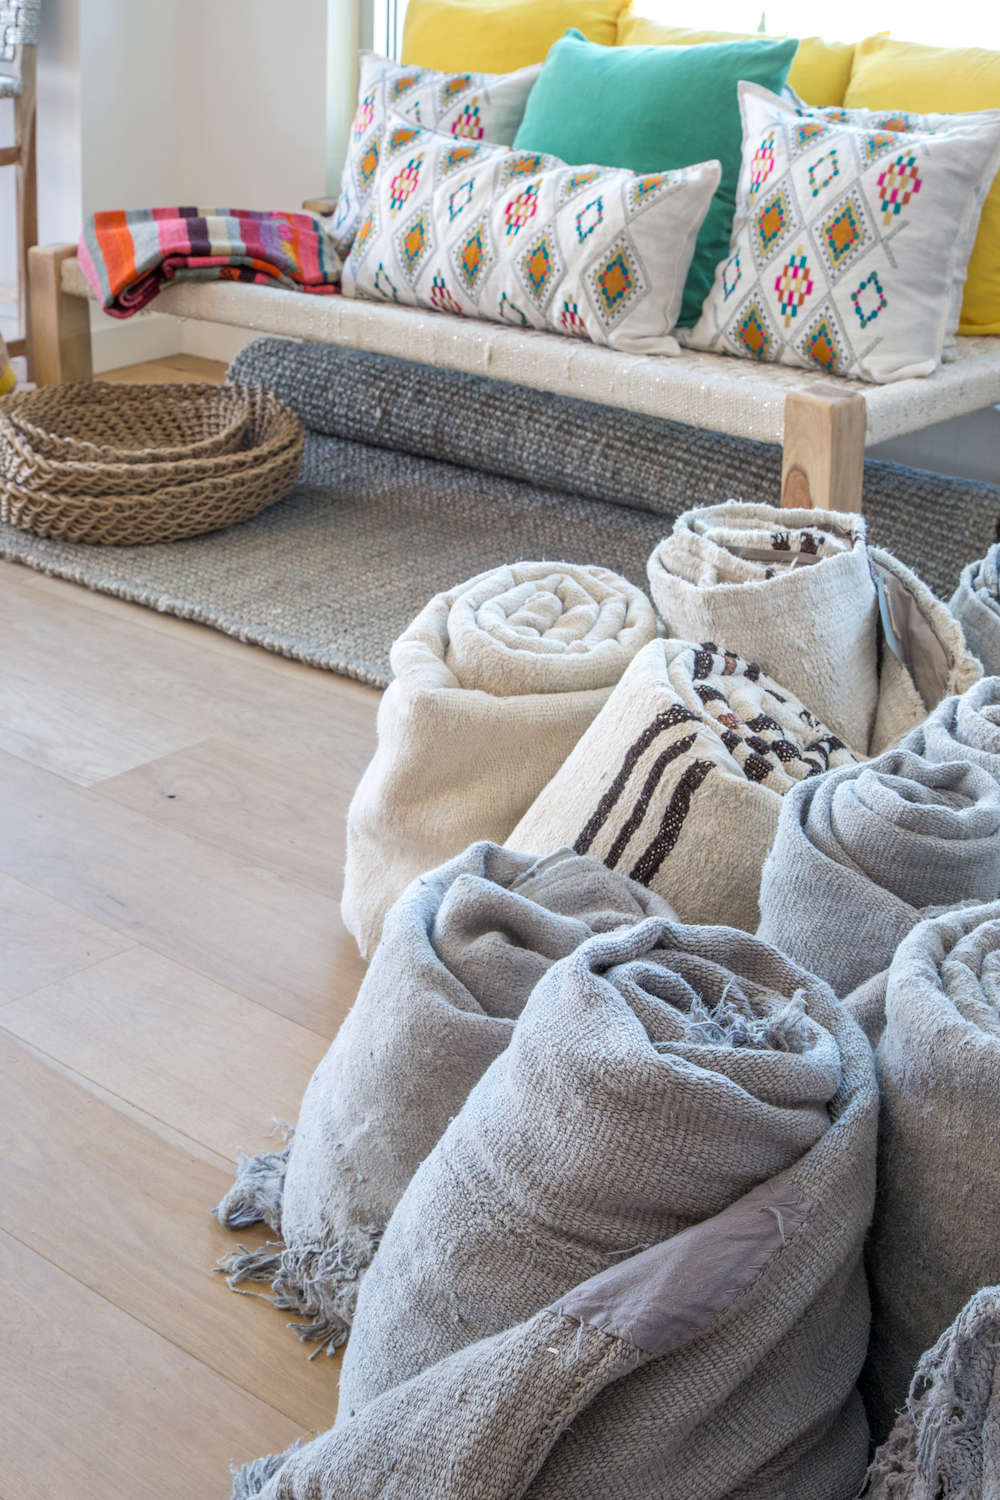 Global eclectic rugs and pillows in Lost & Found modern home store in Santa Monica, Los Angeles